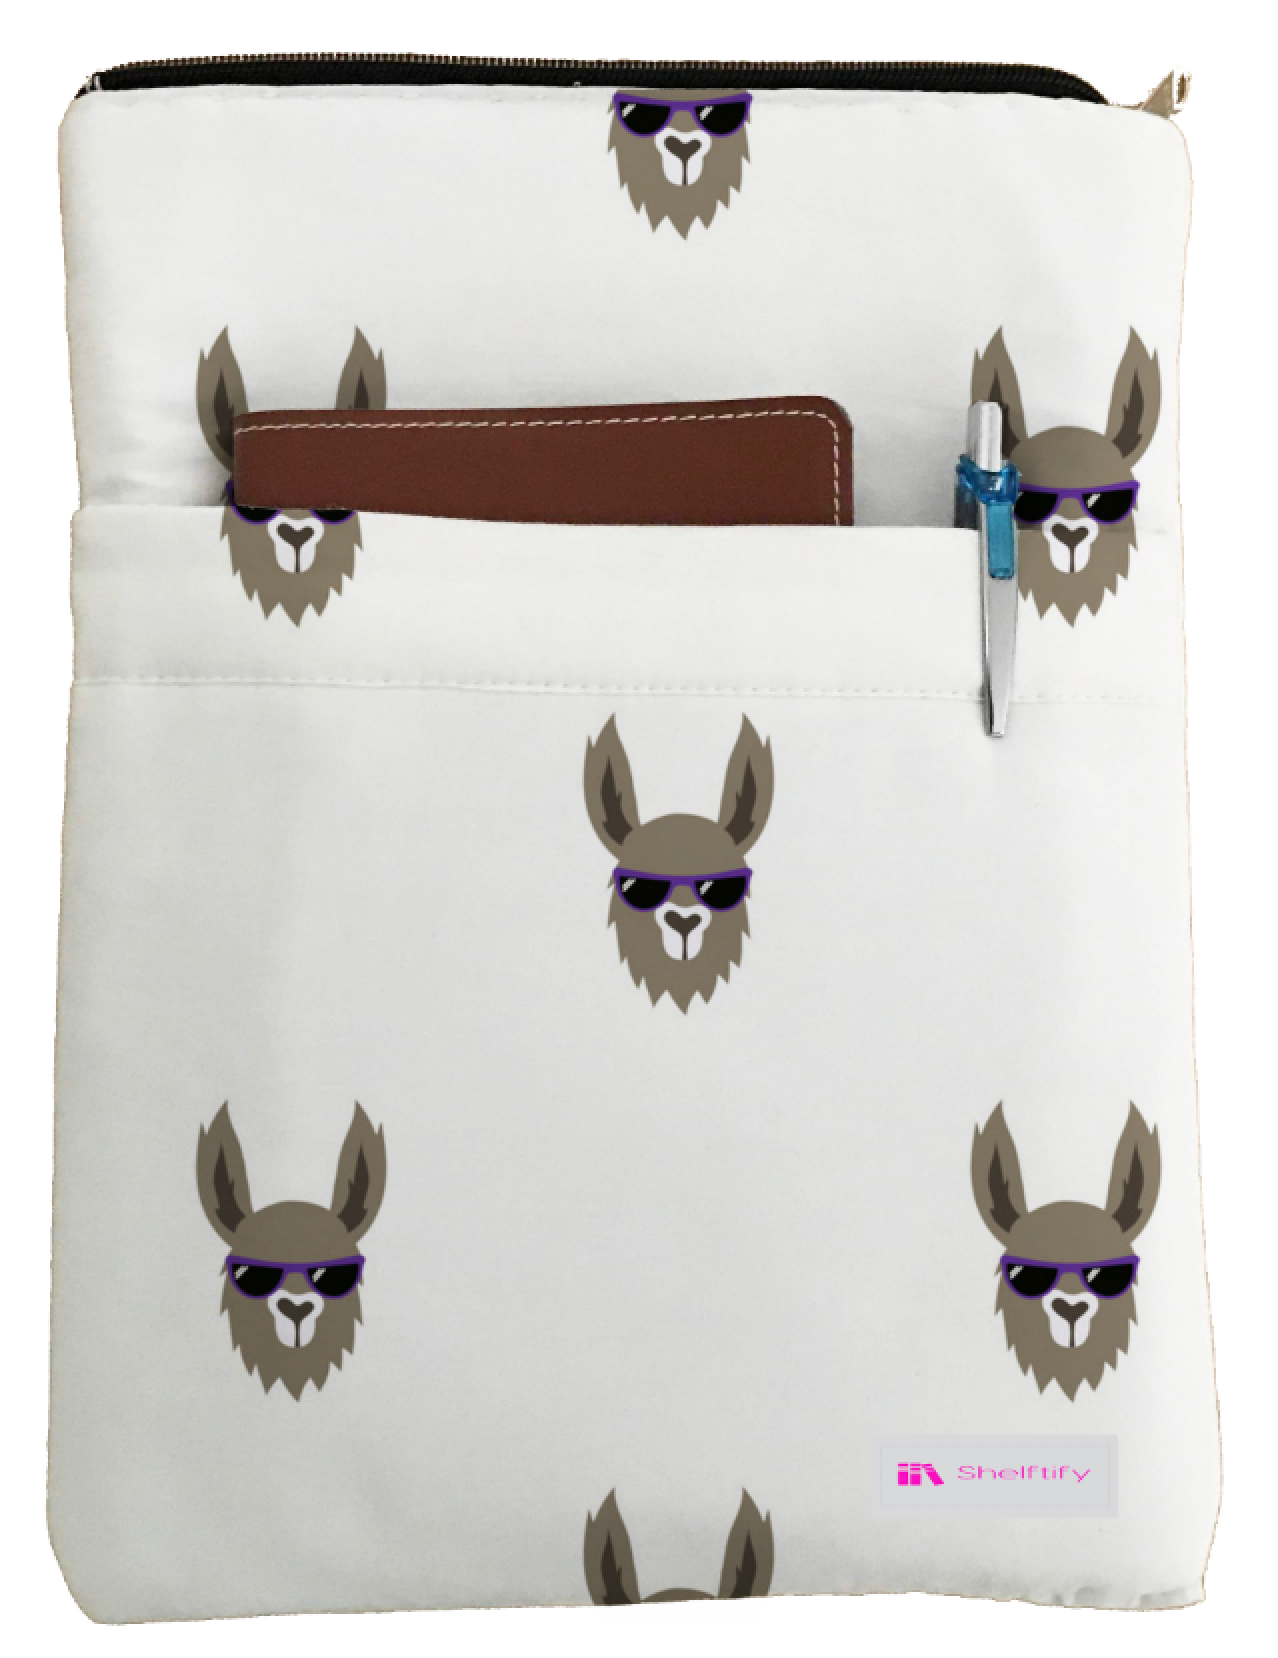 Cool Llama Book Sleeve - Book Cover For Hardcover and Paperback - Book Lover Gift - Notebooks and Pens Not Included